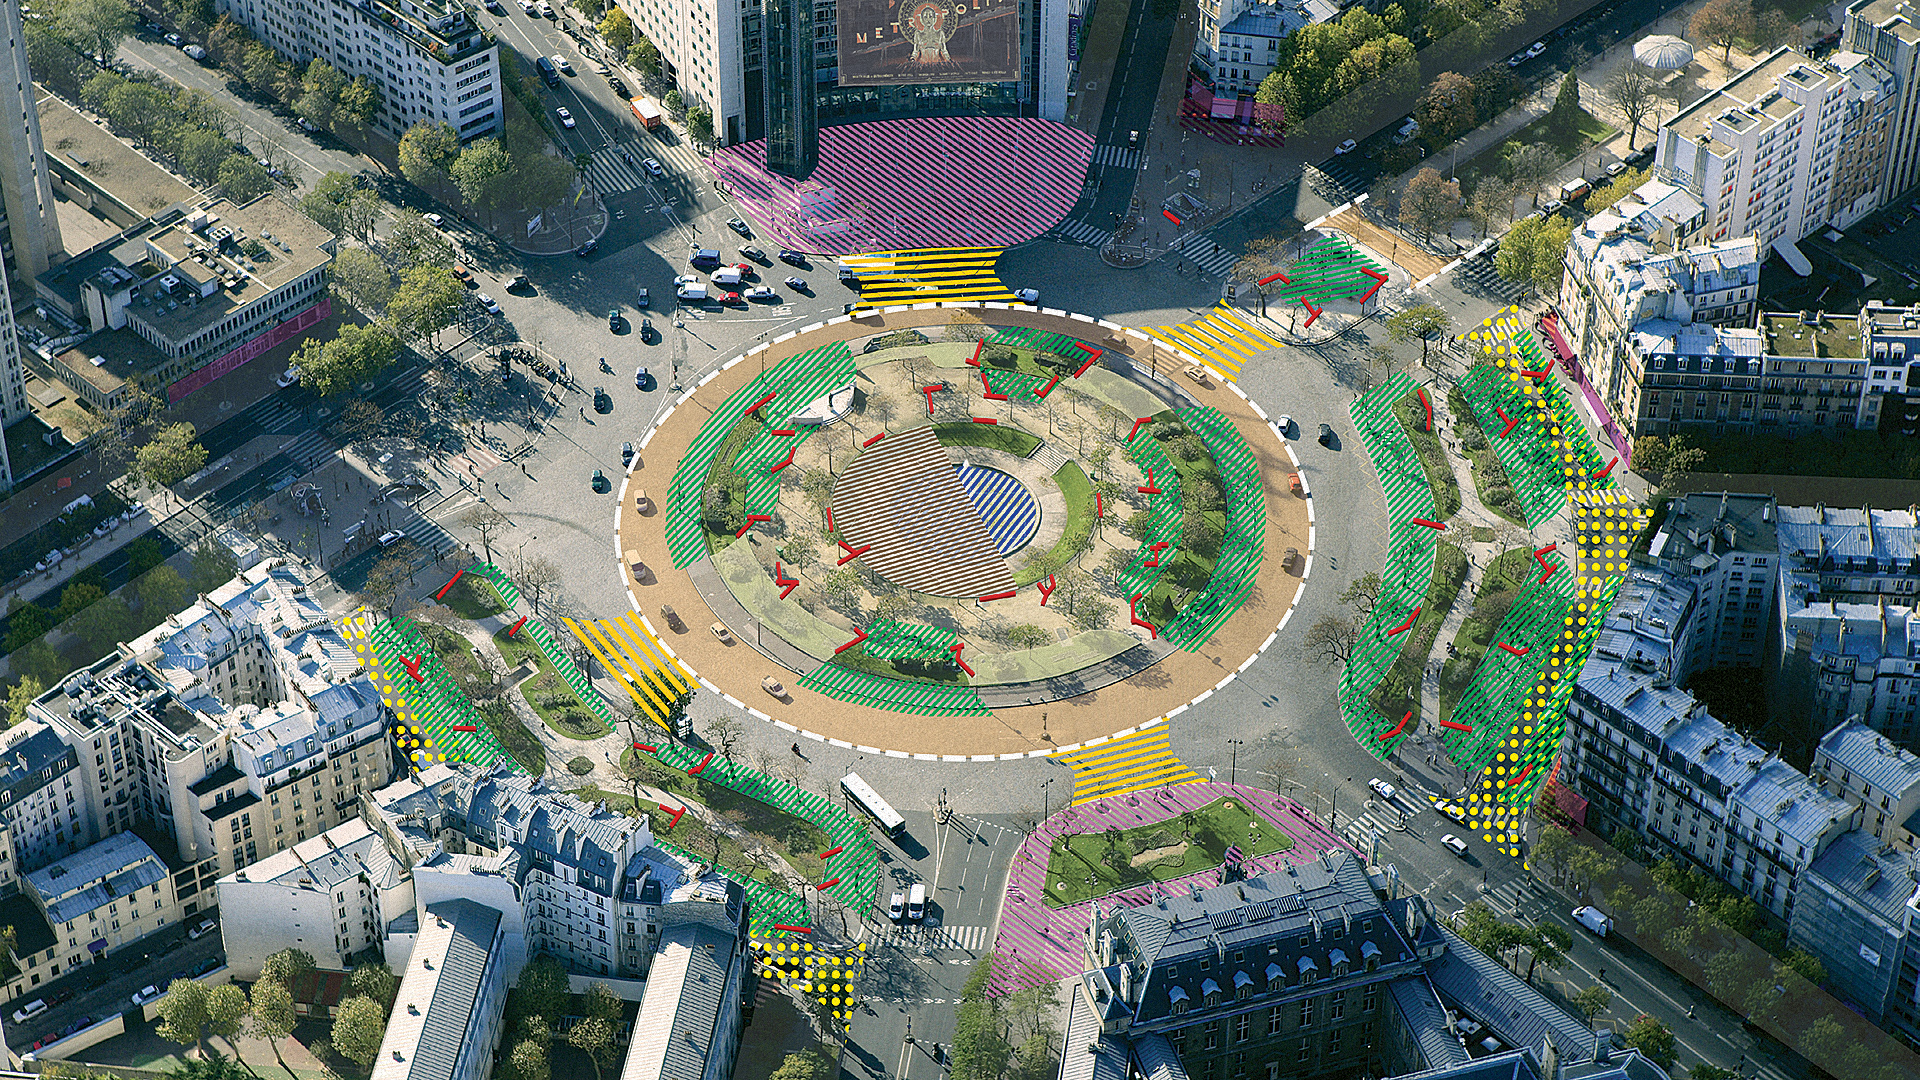 Paris Is Redesigning Its Major Intersections For Pedestrians, Not Cars